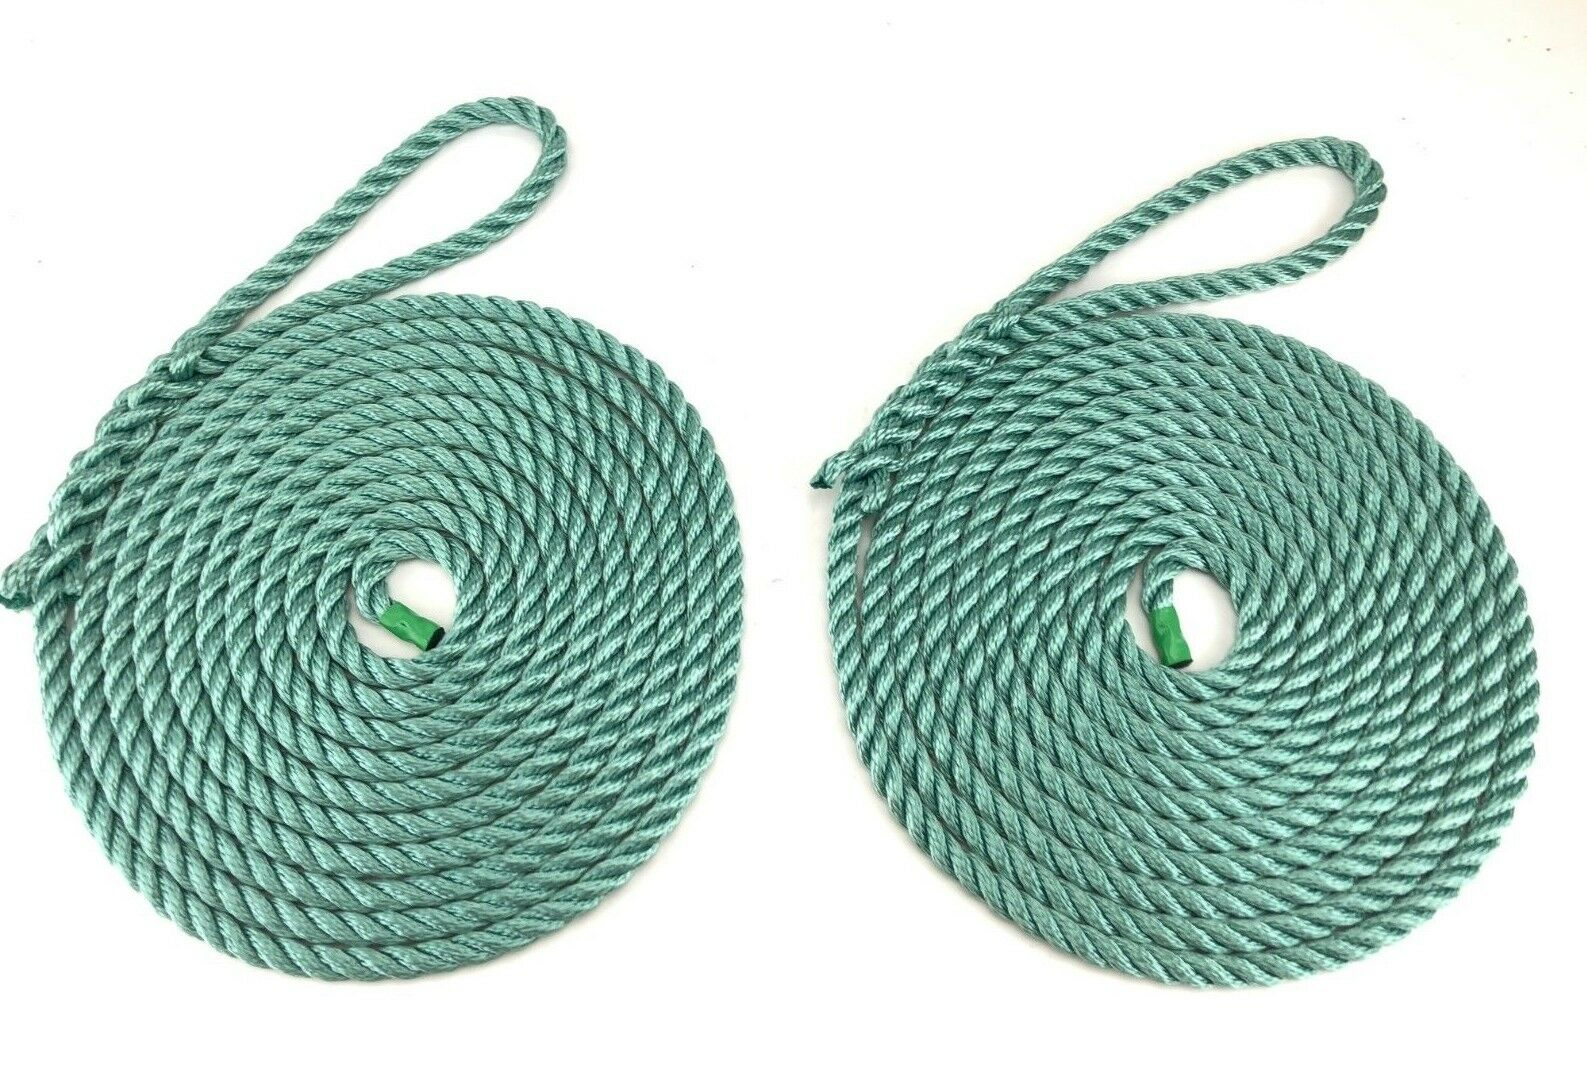 2 x 5 Metres of 12mm Teal Mooring Ropes. Warps, Boat Lines, Yachts, Canal